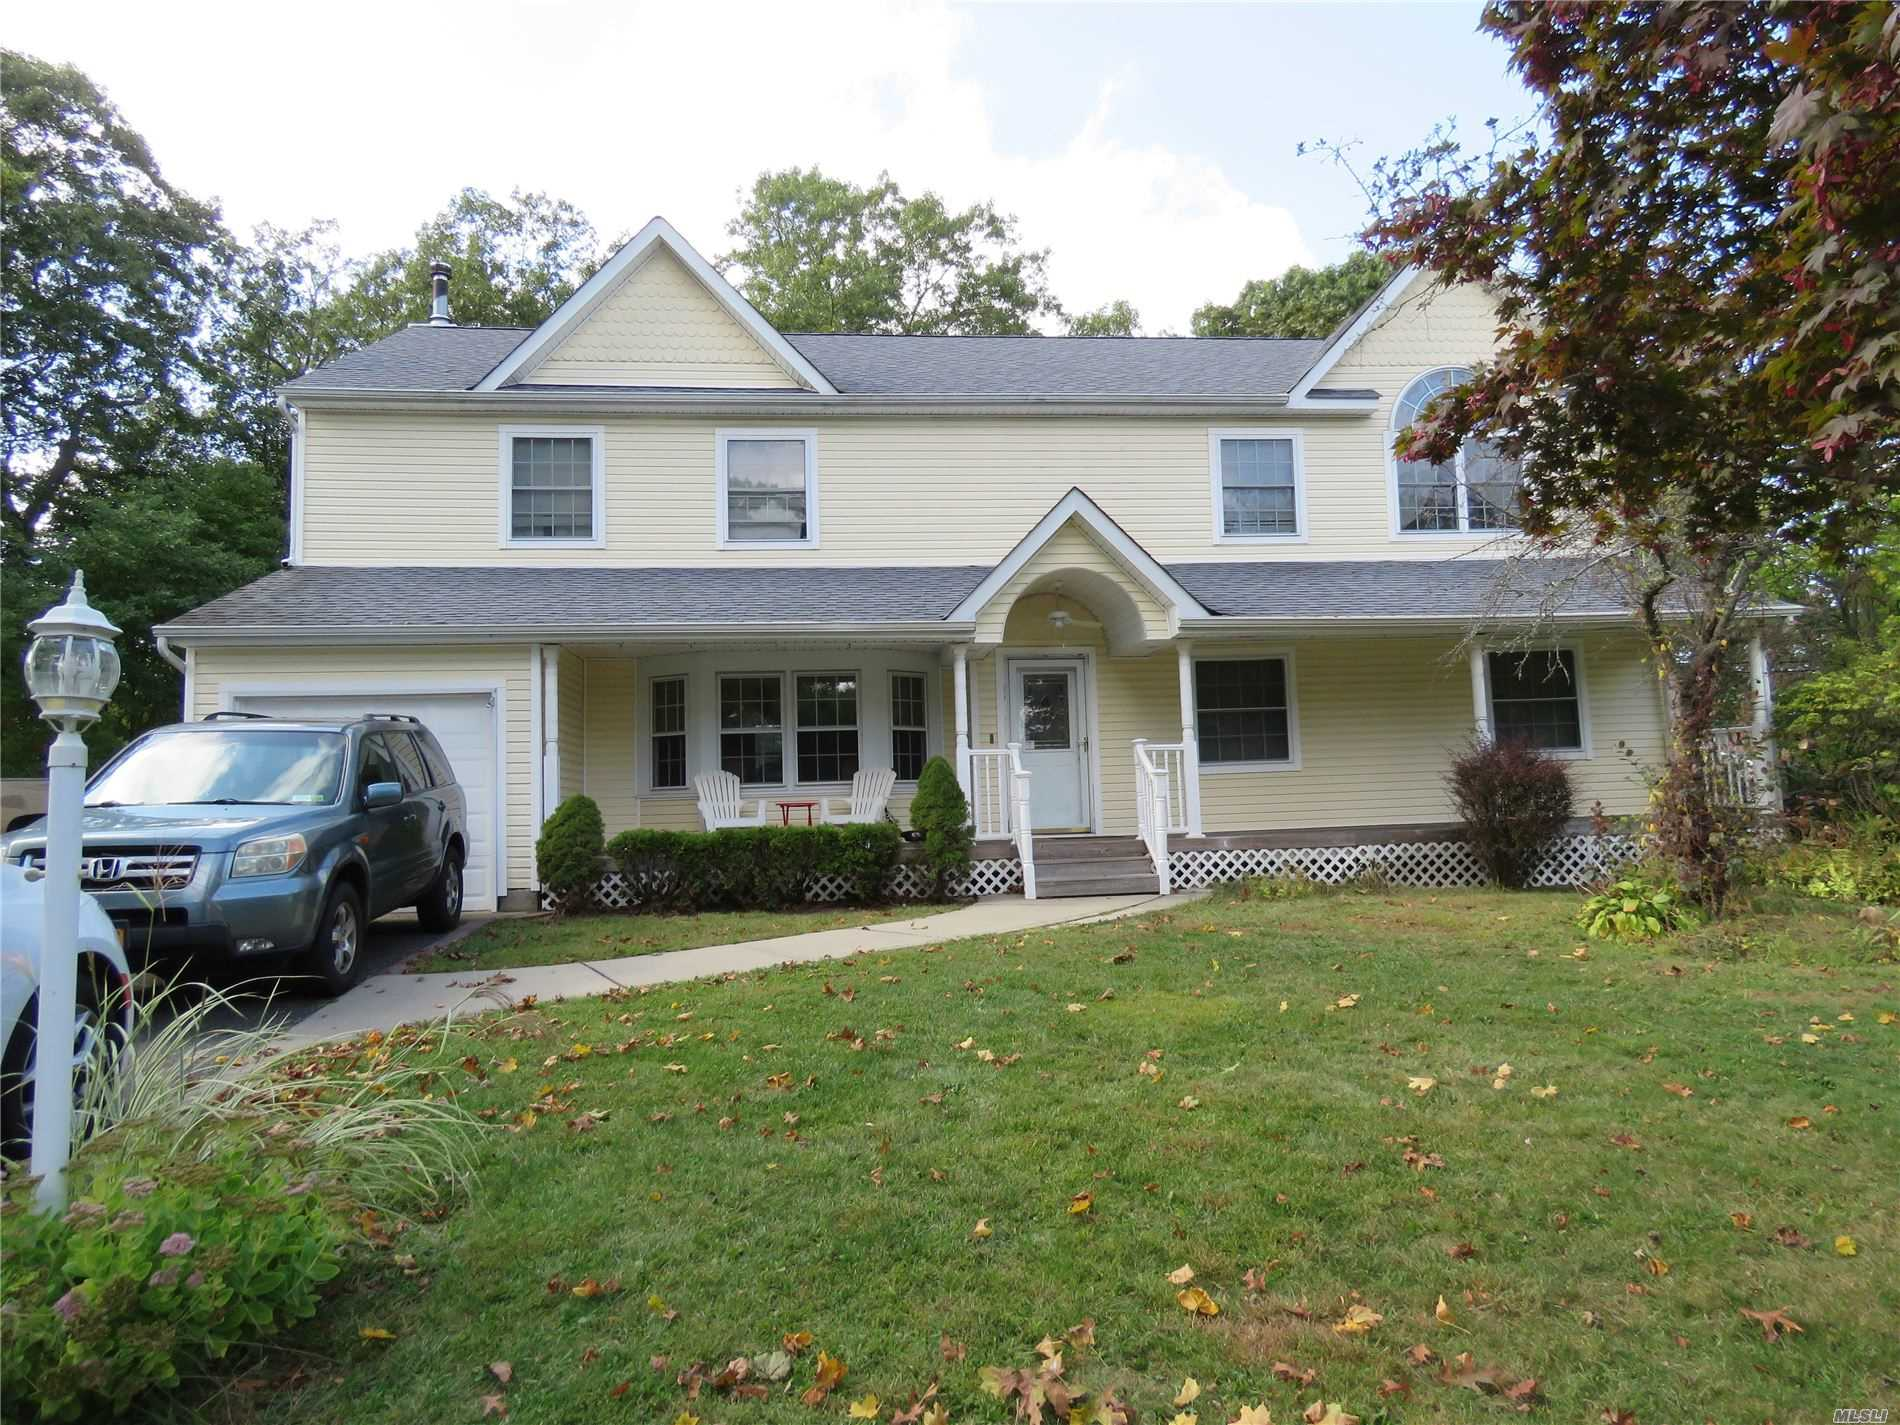 122 Gannet Dr - Commack, New York